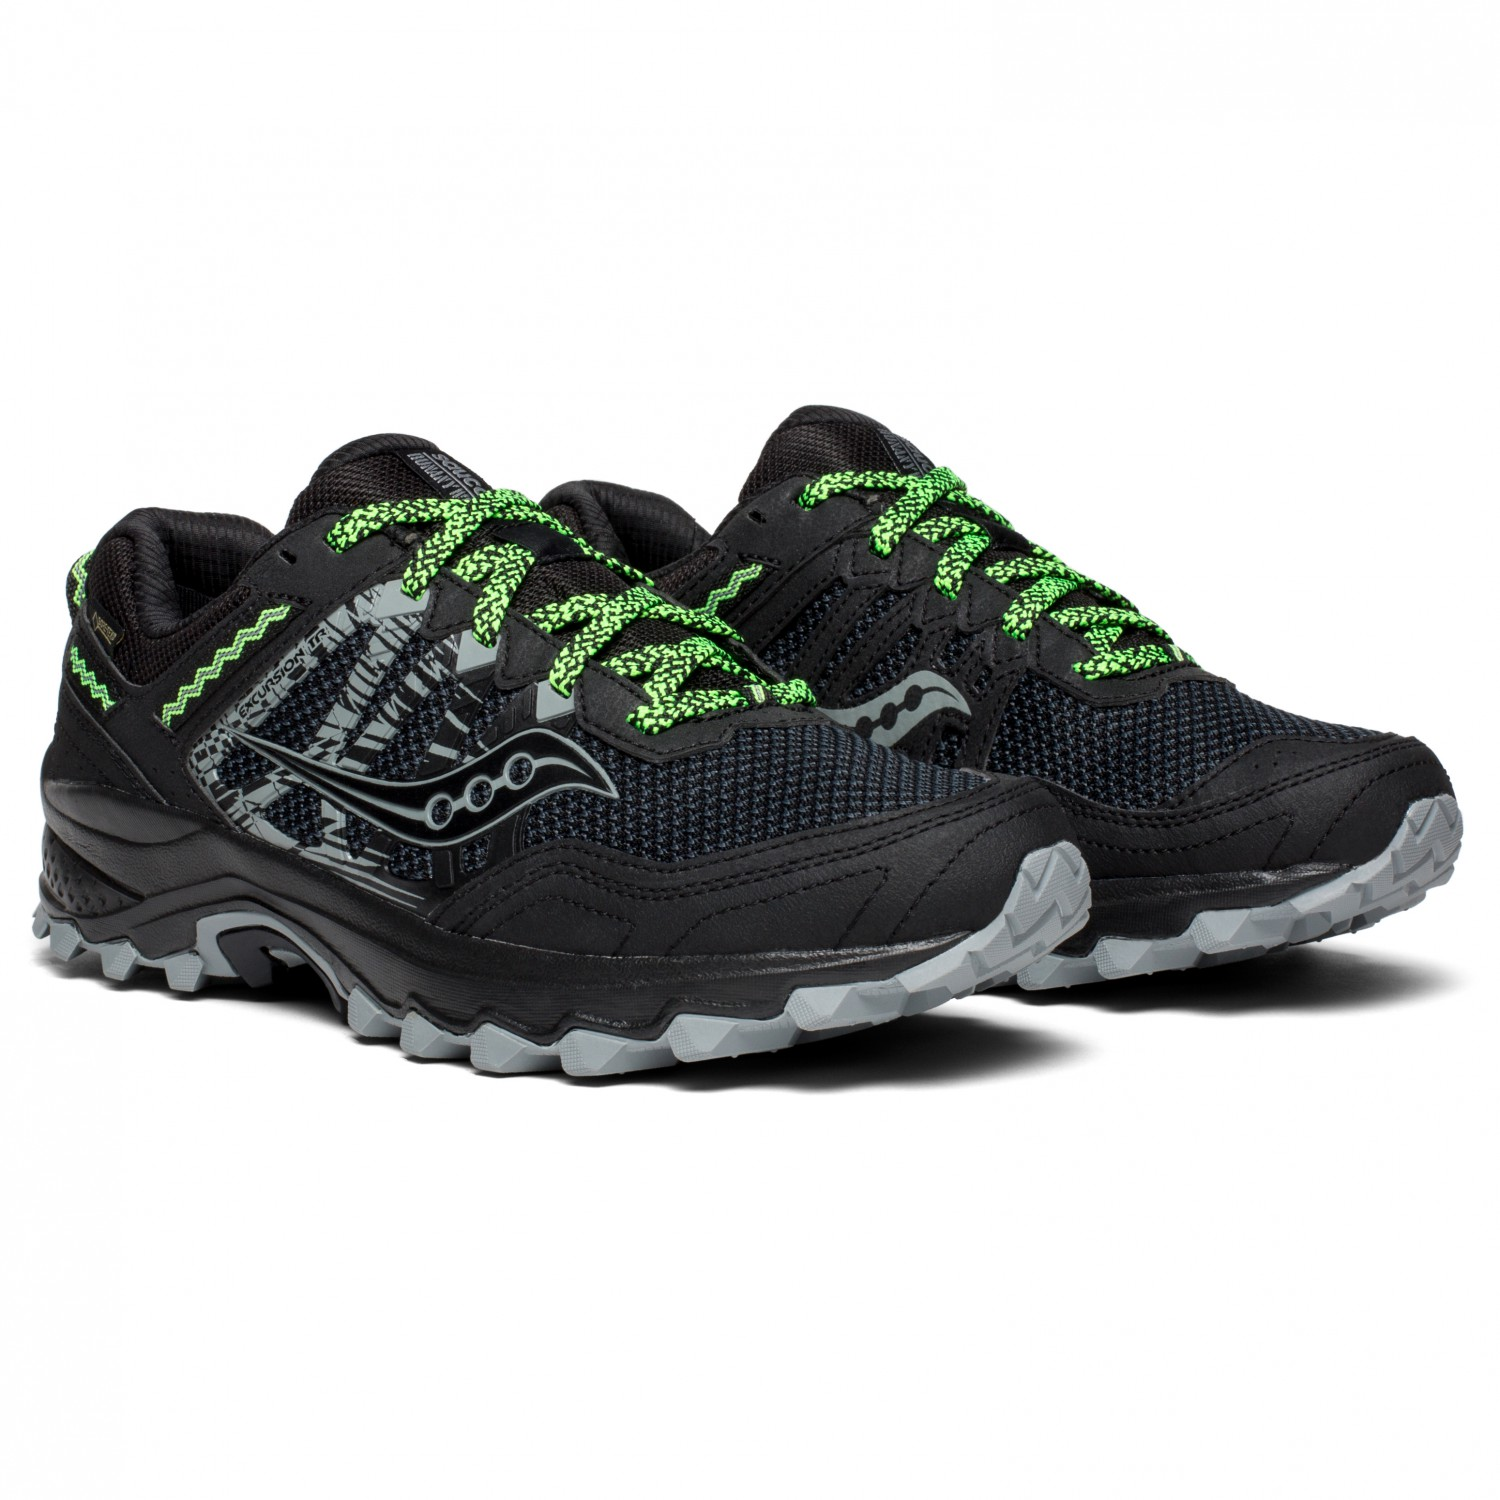 f56efad5ff Saucony - Excursion TR12 GTX - Trail running shoes - Black | 10 (US)